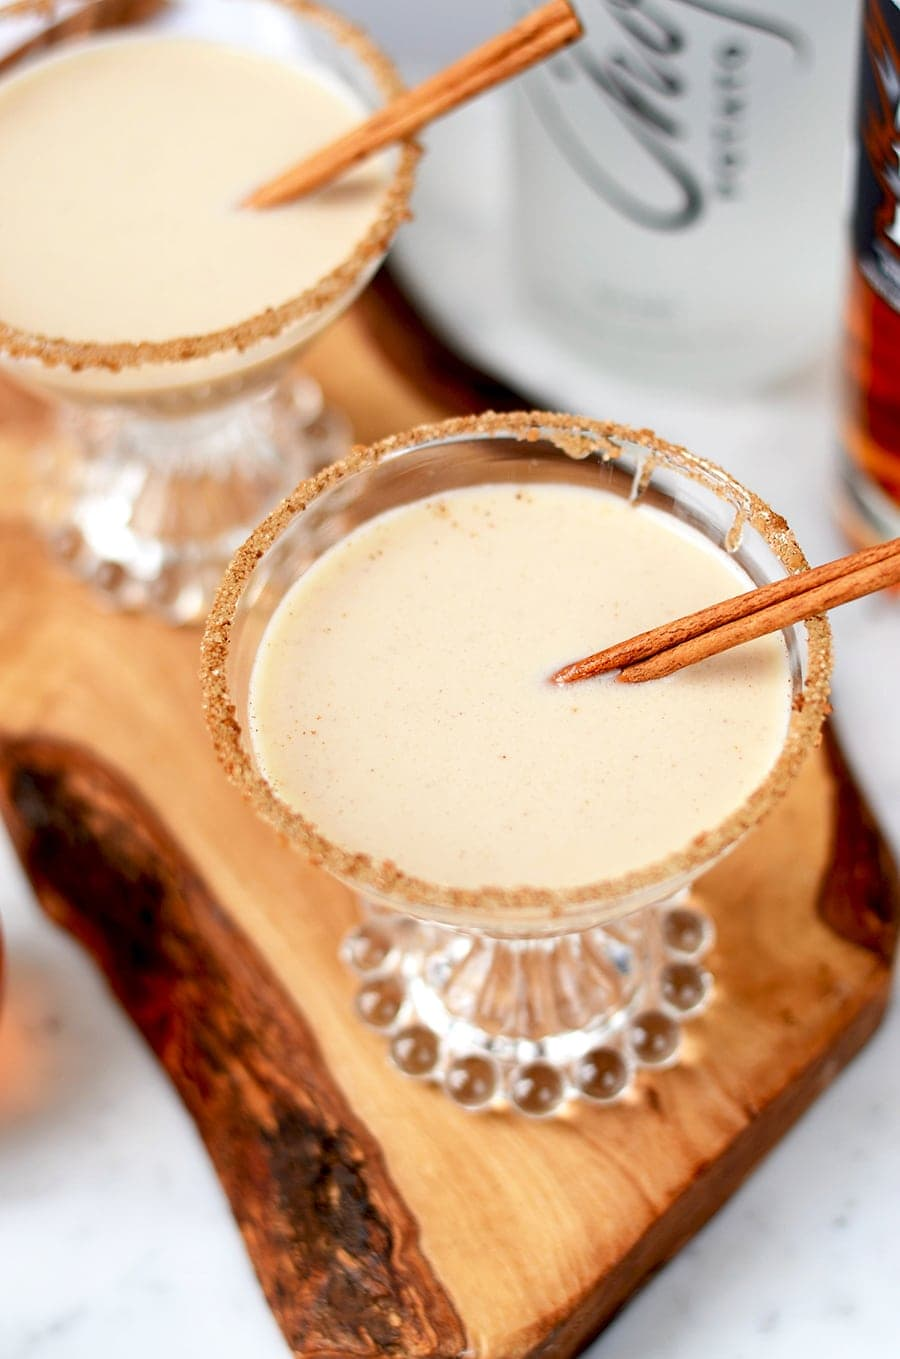 These cinnamon and honey flavored Sopapilla Martinis are inspired by the pillowy dessert pastries you find in Mexican restaurants. Marvelous!